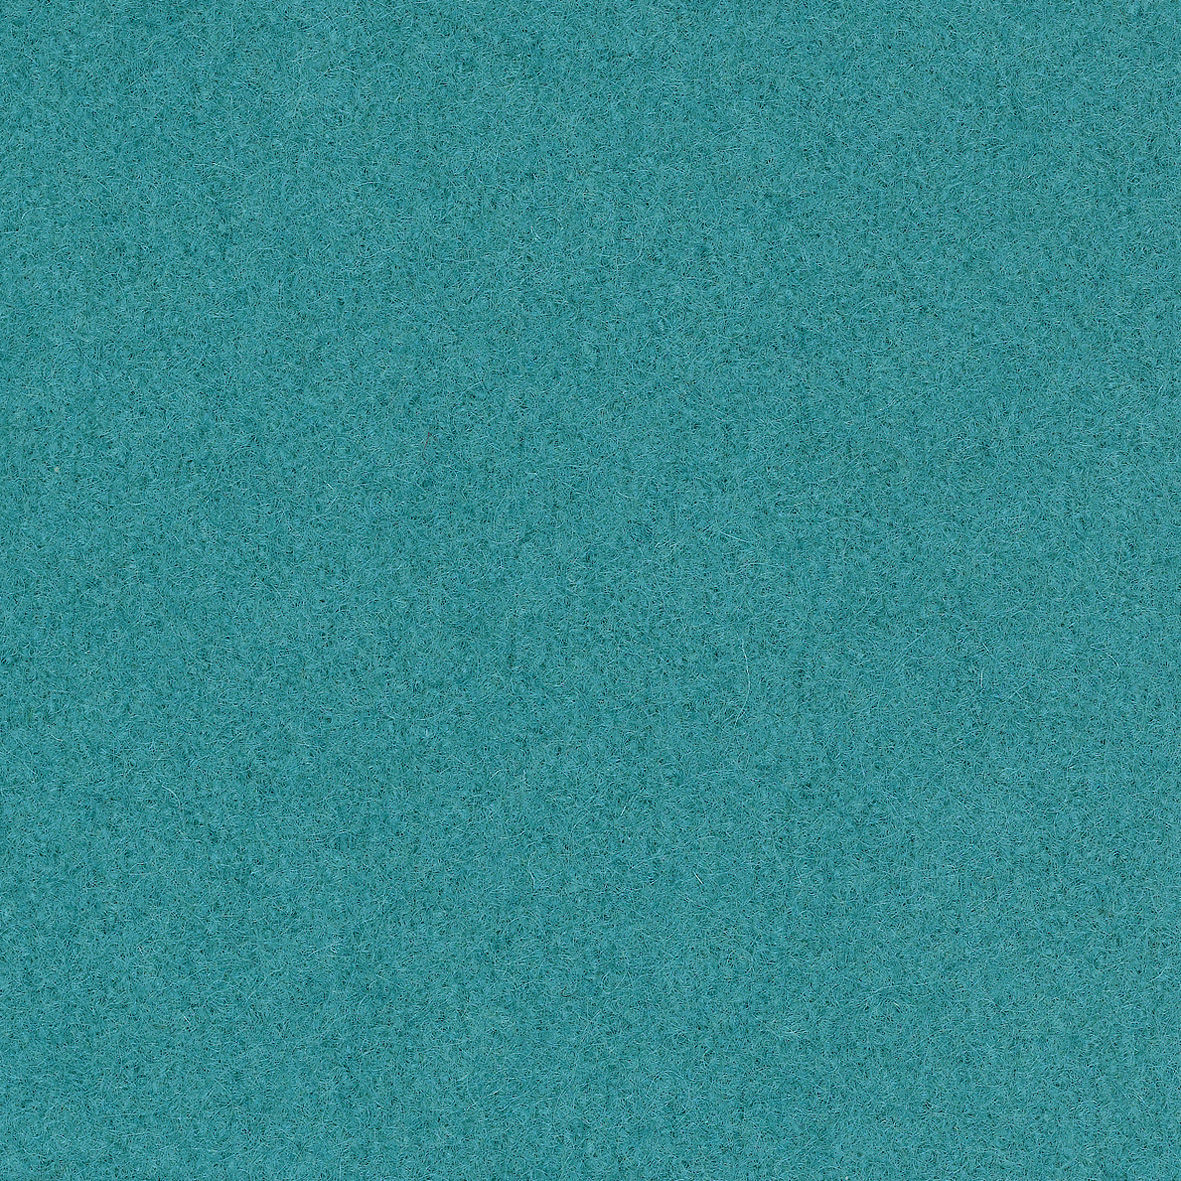 Full Wool - Lagoon - 4008 - 16